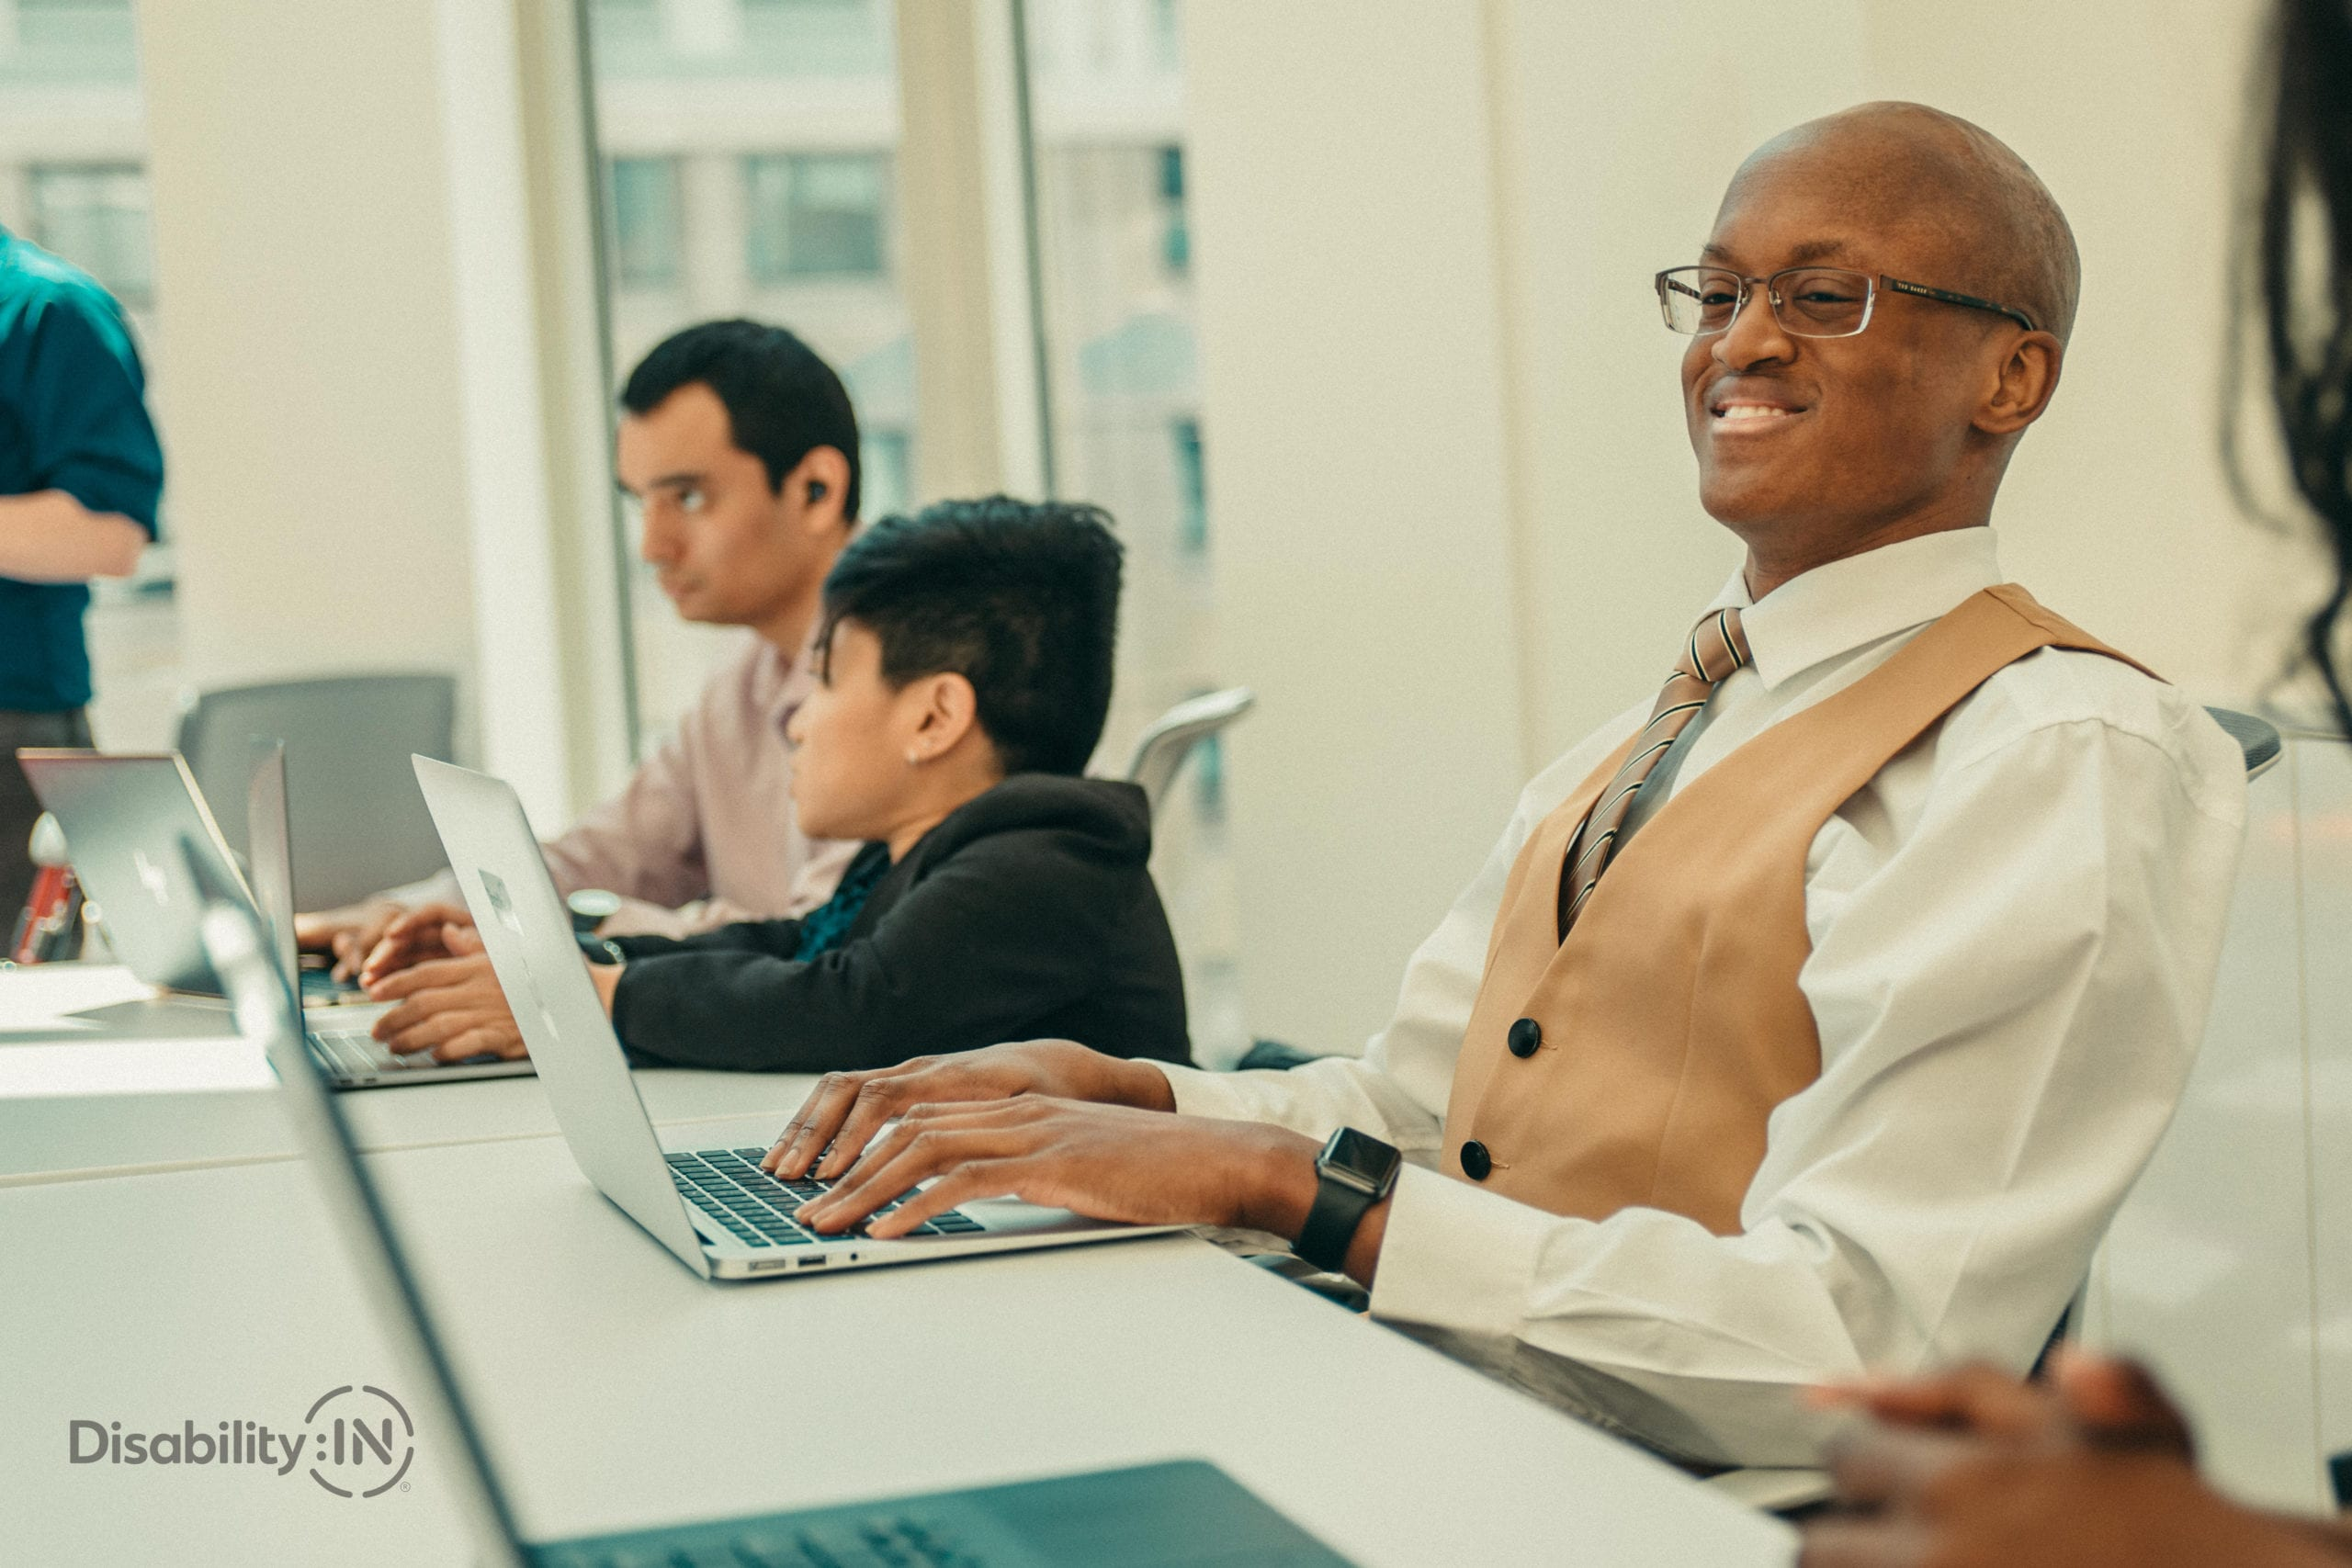 Man sitting at a full conference table on laptop smiling.